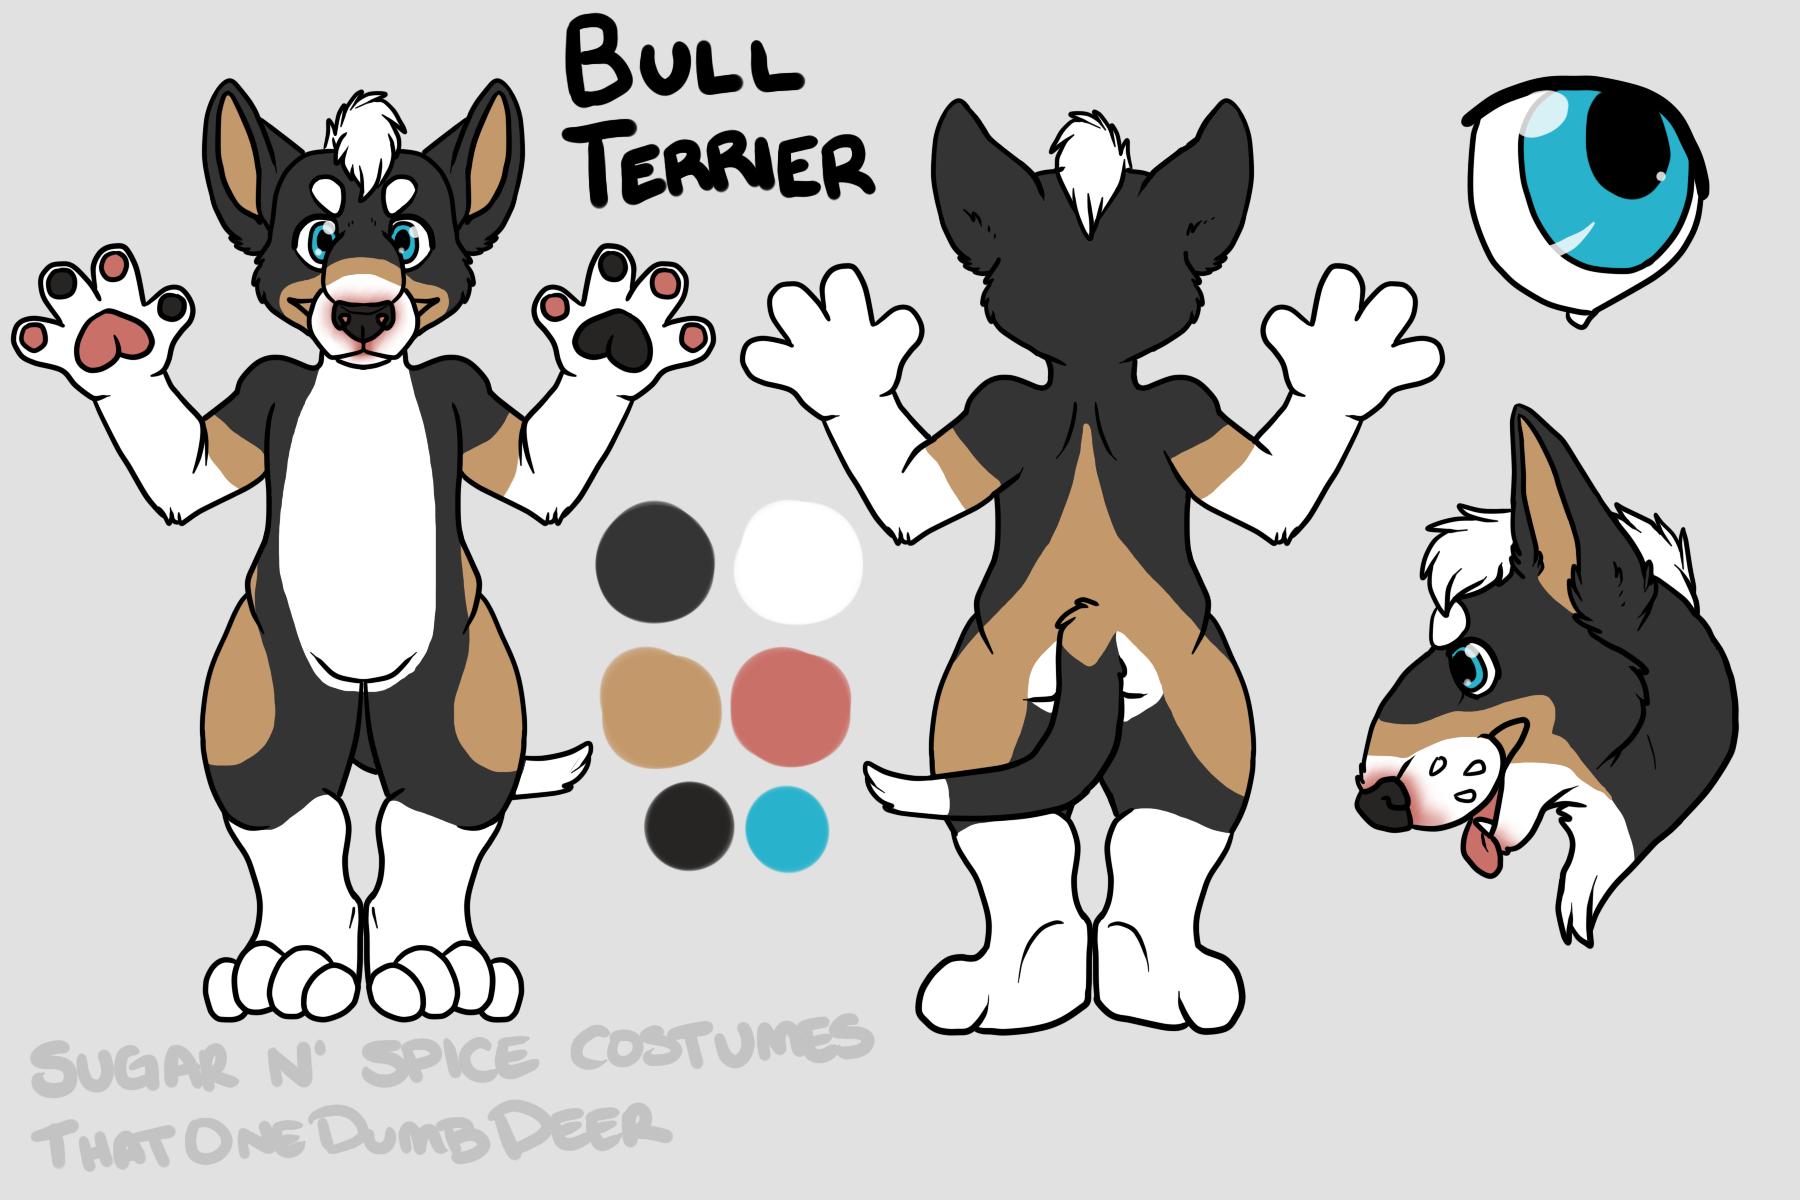 Tri color English bull terrier - $1800 Plantigrade Full suit$2100 Didgigrade Full suit. This suit will include a badge from Lilbobleat